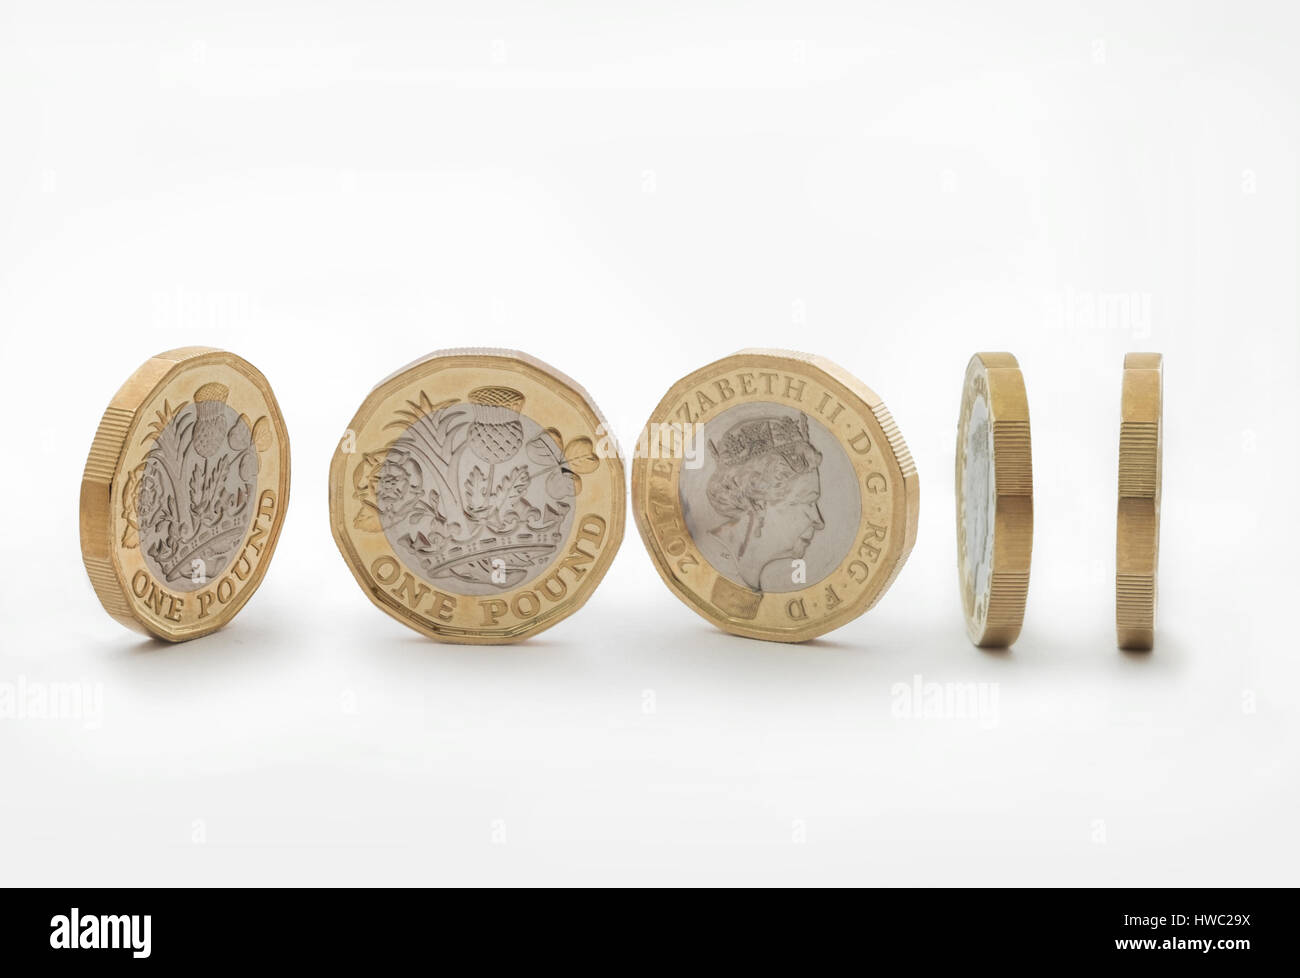 New 2017 design pound coin - Stock Image